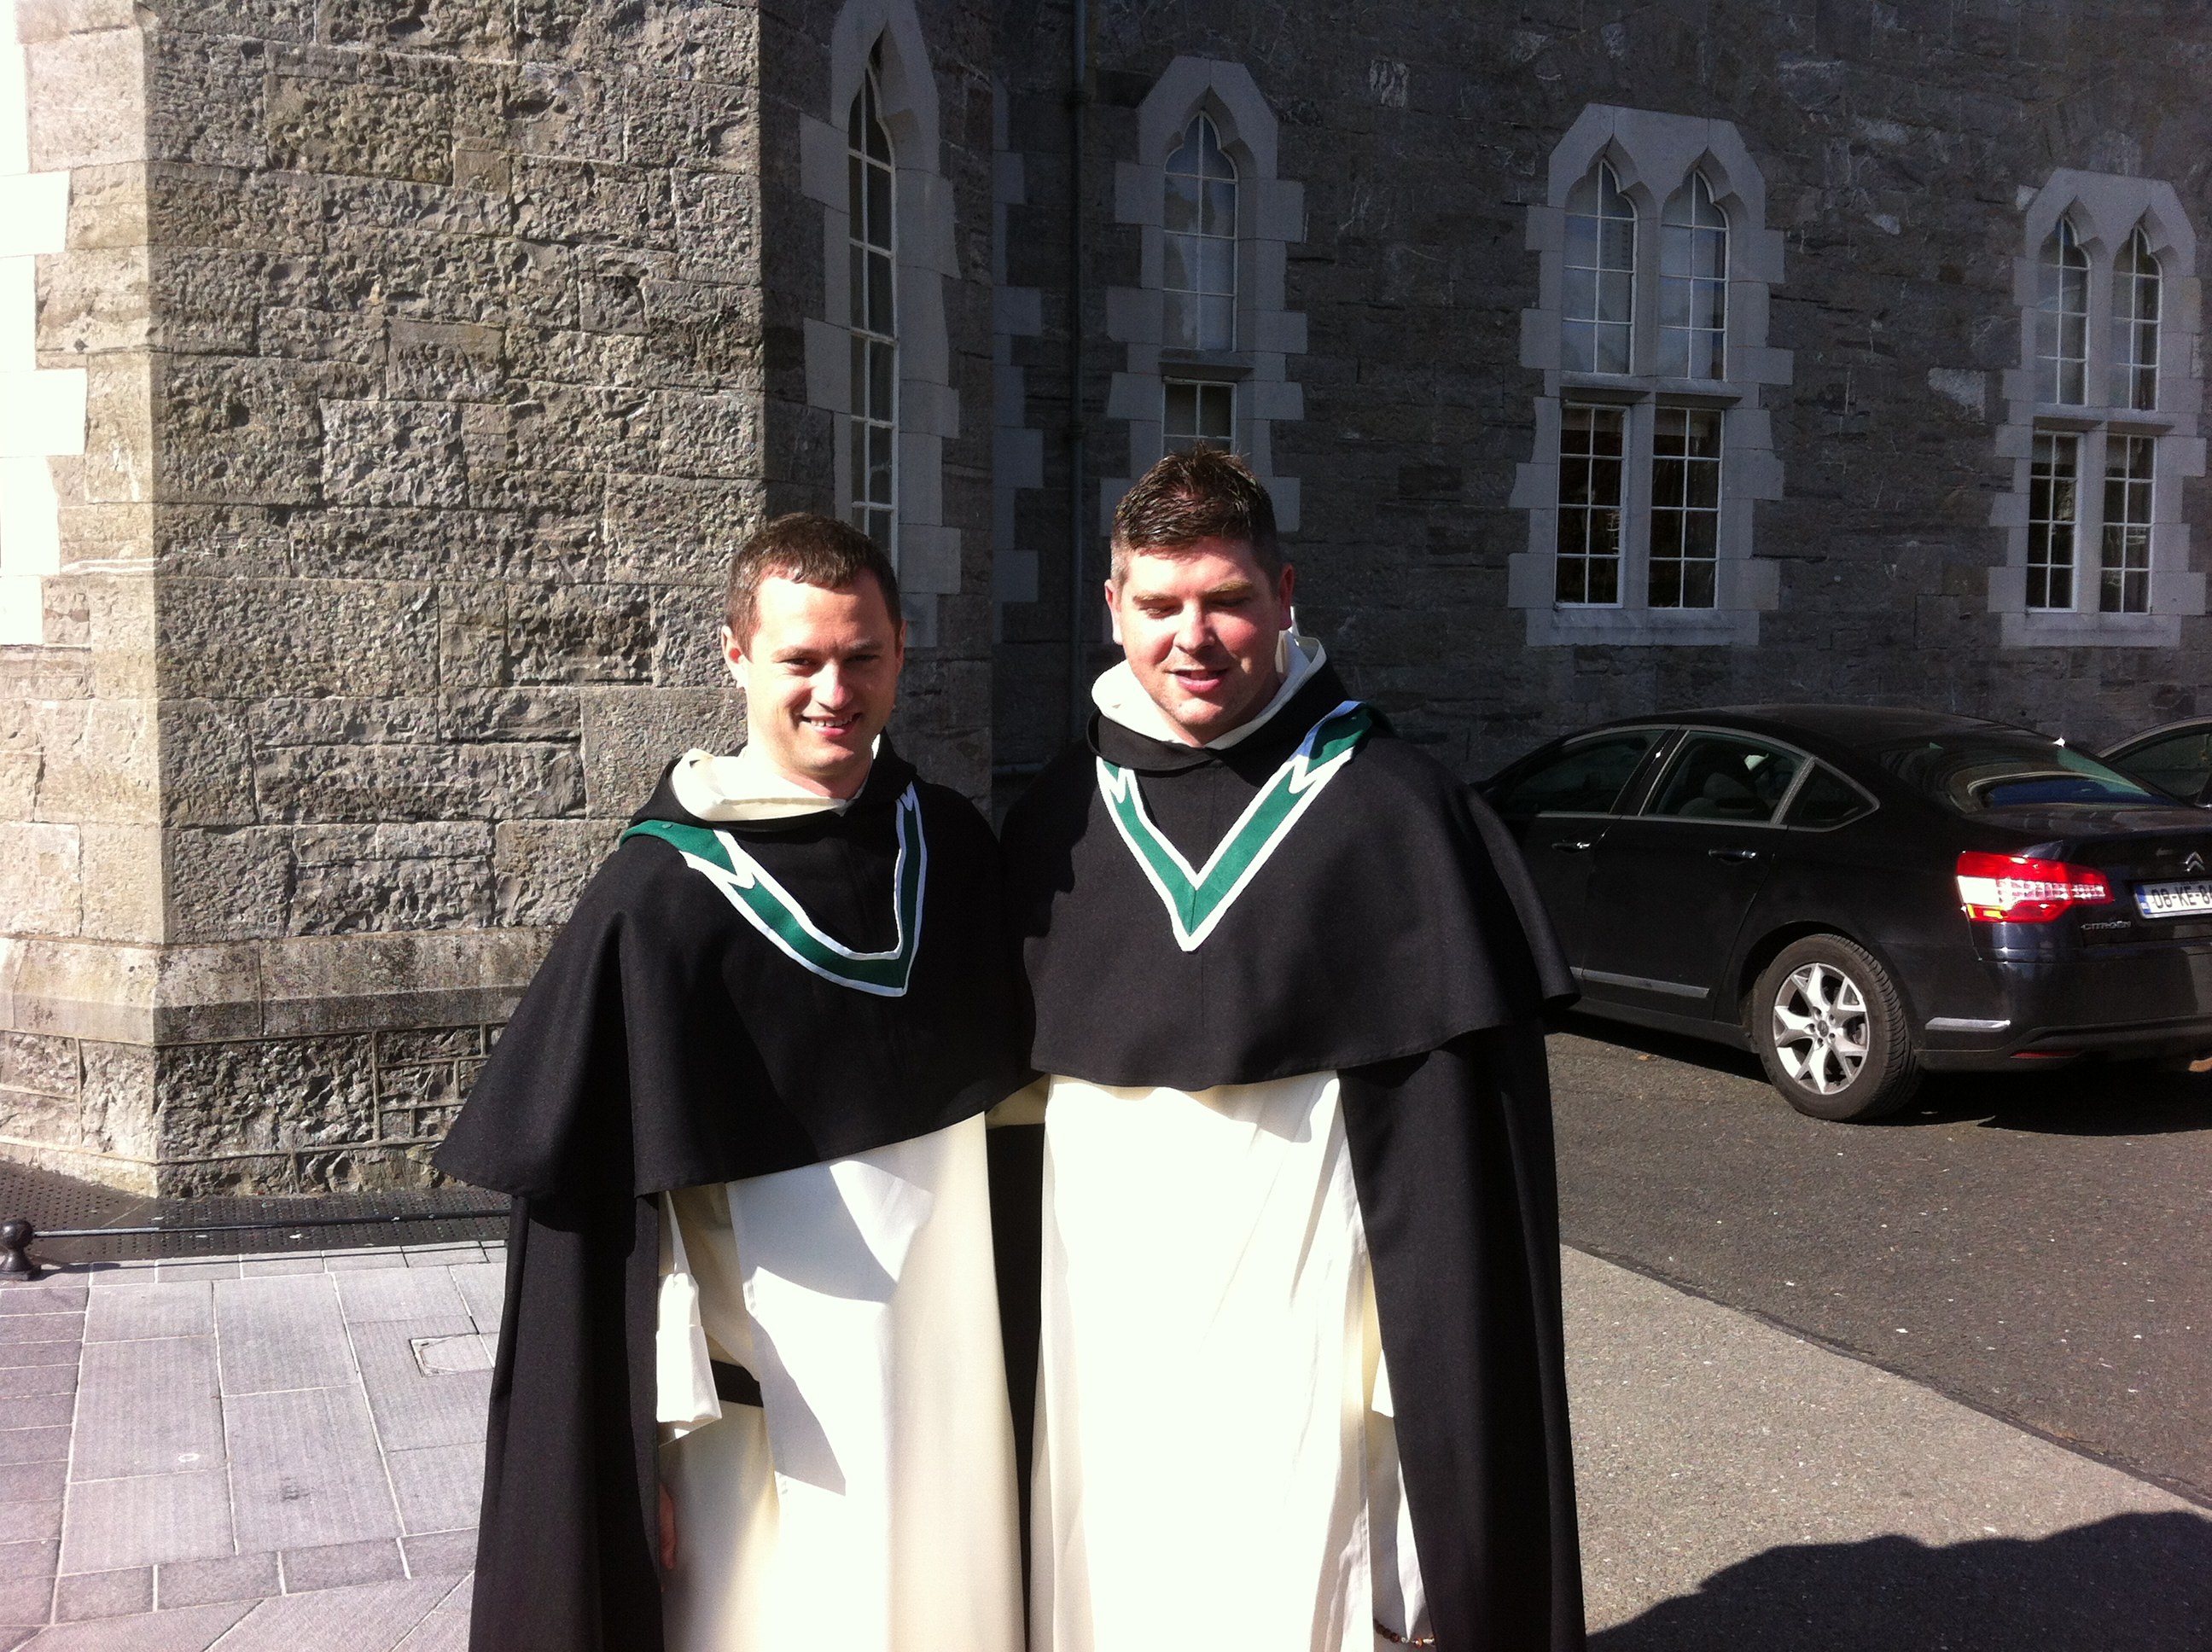 Two brothers conferred in Maynbooth